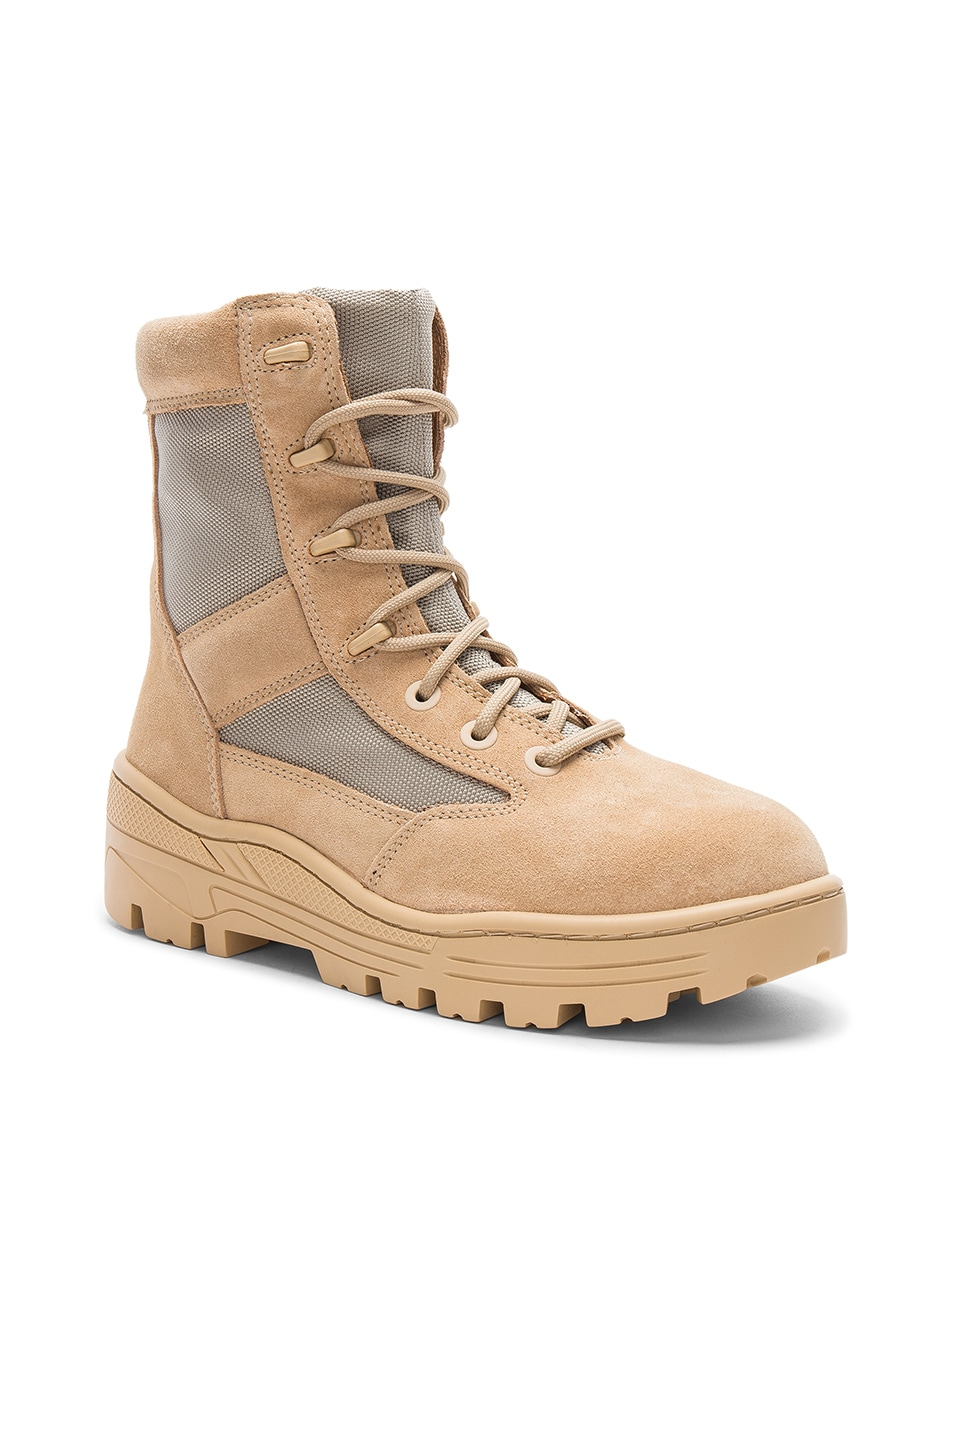 4661f6f48bdf7 Image 1 of YEEZY Season 4 Suede Combat Boots in Sand